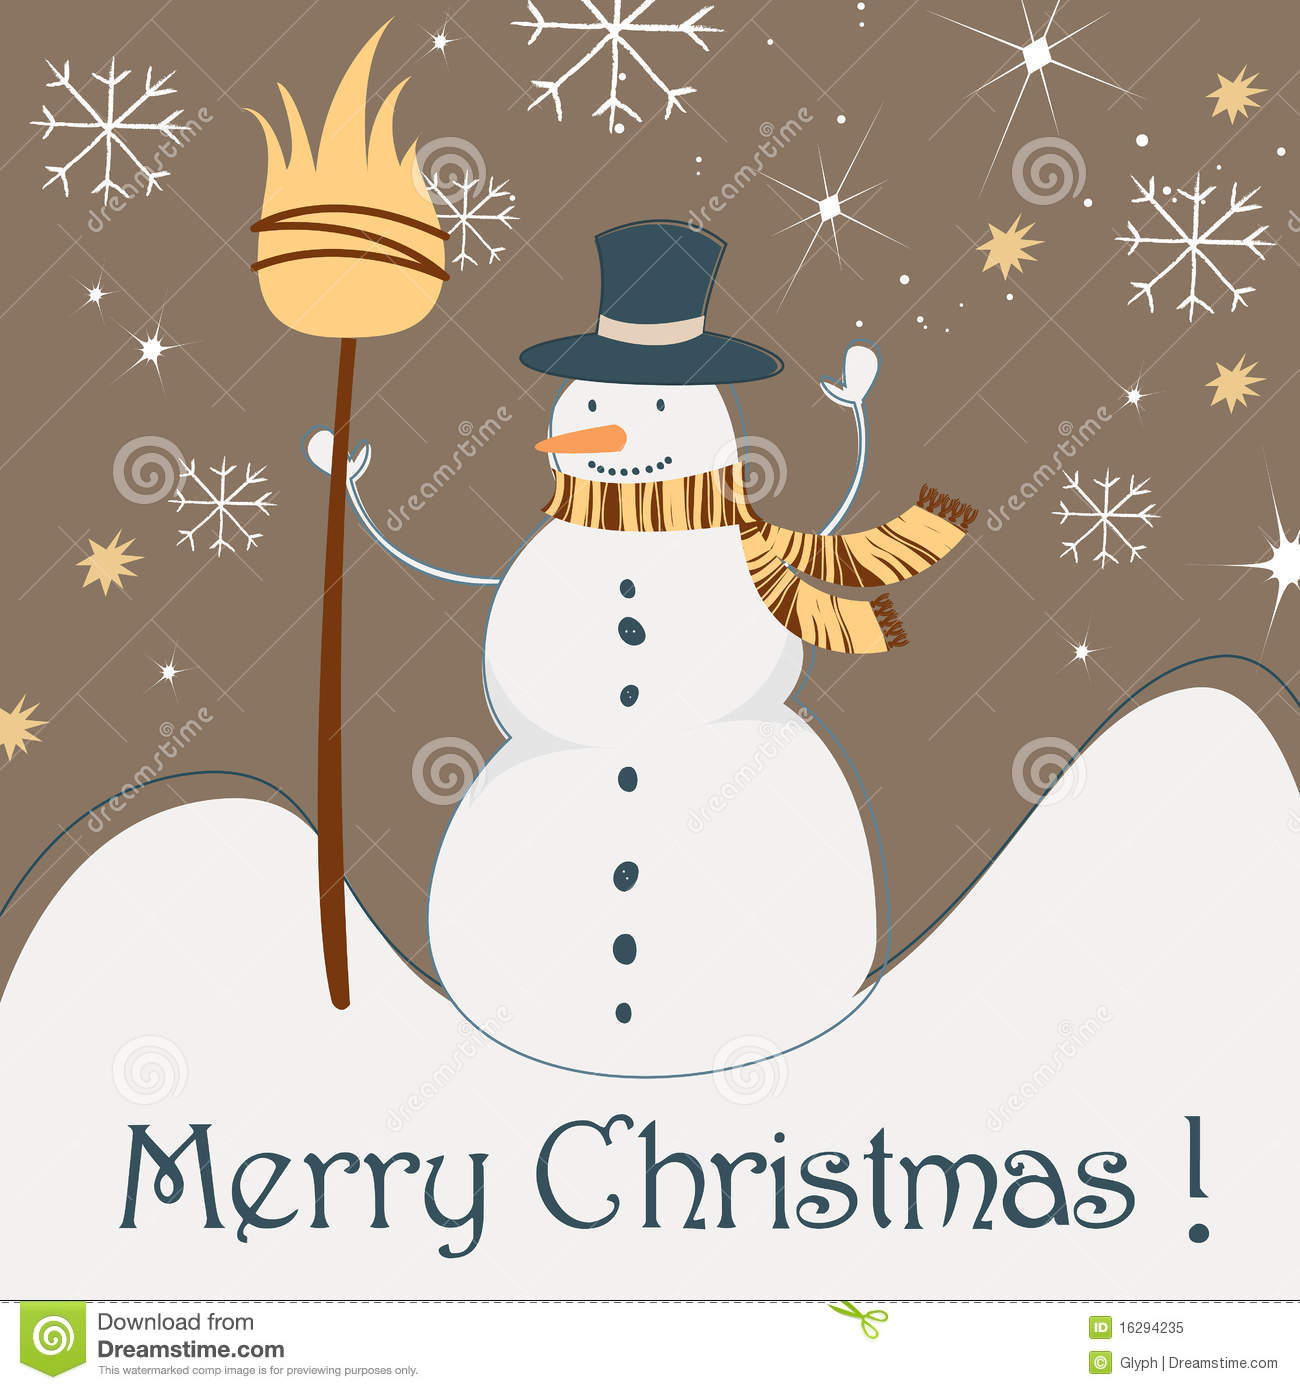 Cute Christmas Greeting Card With Snowman Stock Vector